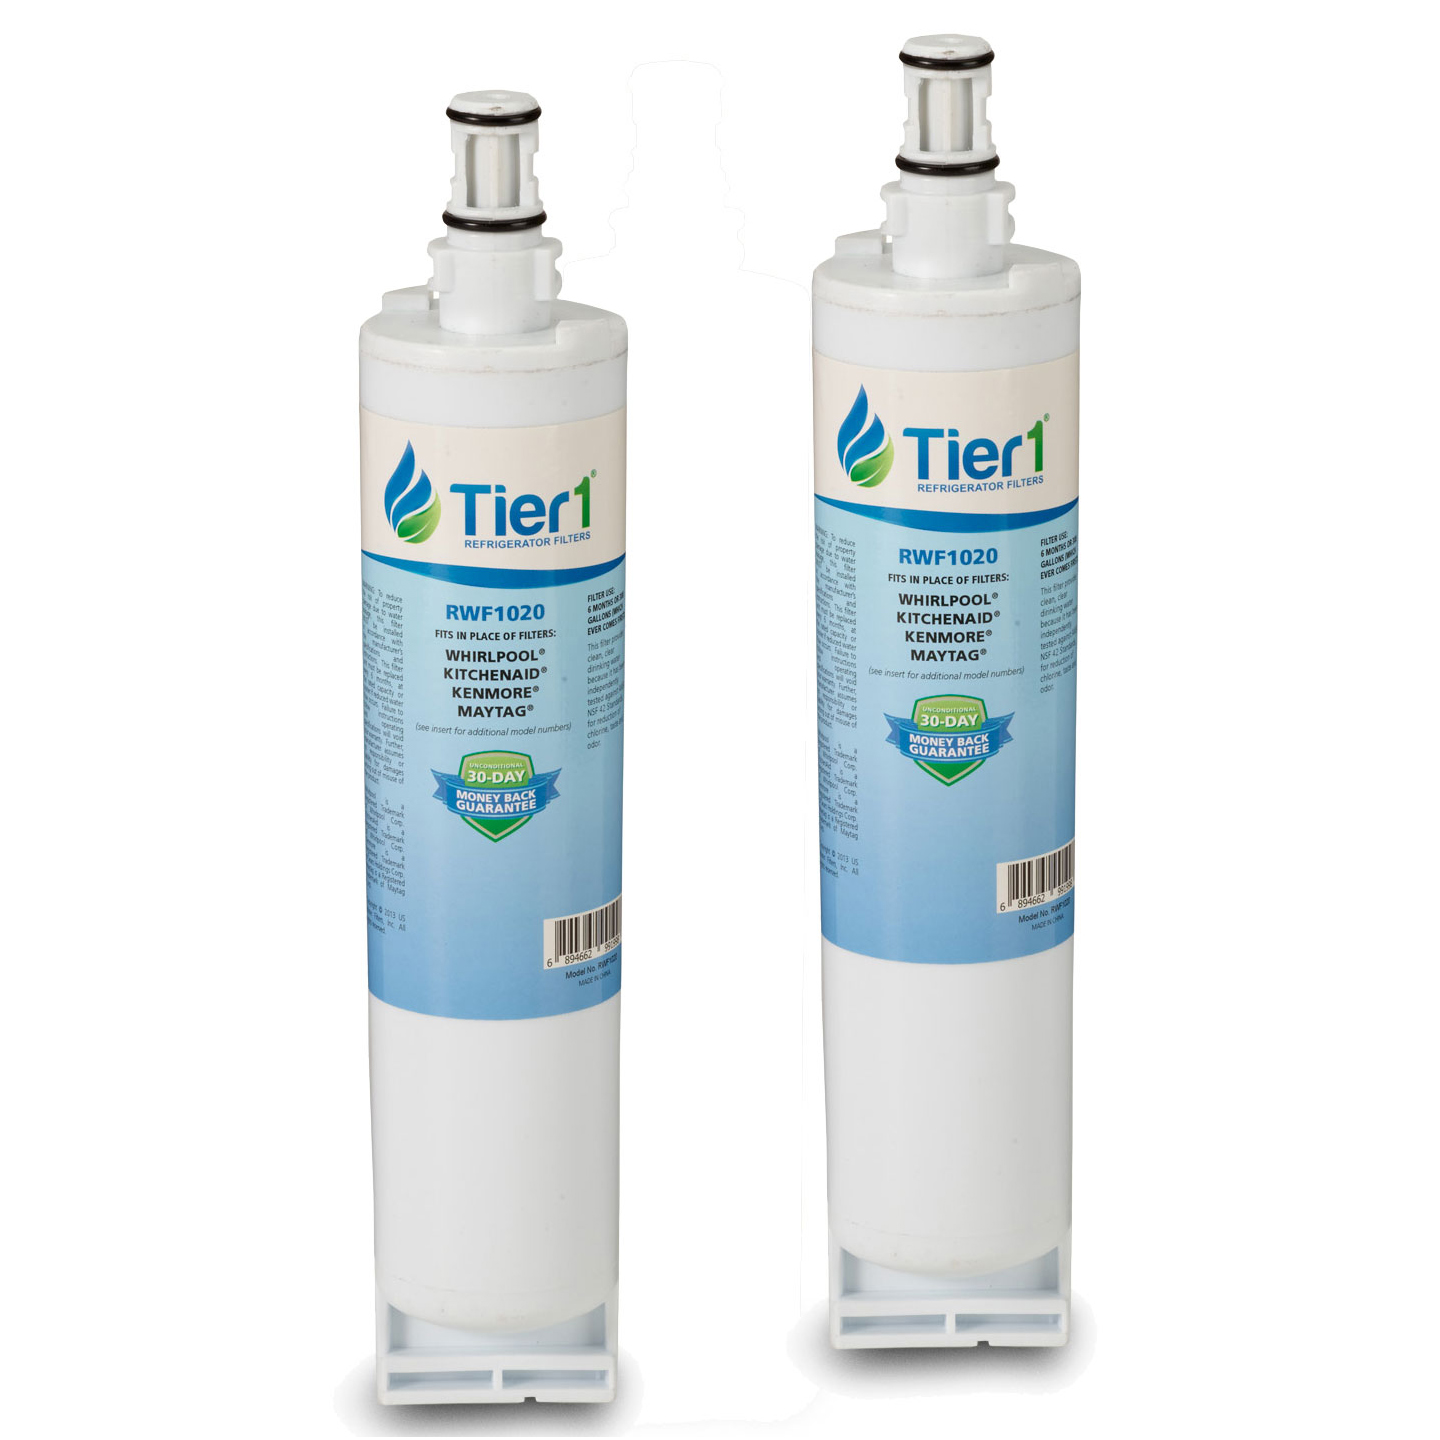 4396508/4396510 Whirlpool Comparable Refrigerator Water Filter Replacement By Tier1 (2 Pack) TIER1_RWF1020_2_PACK